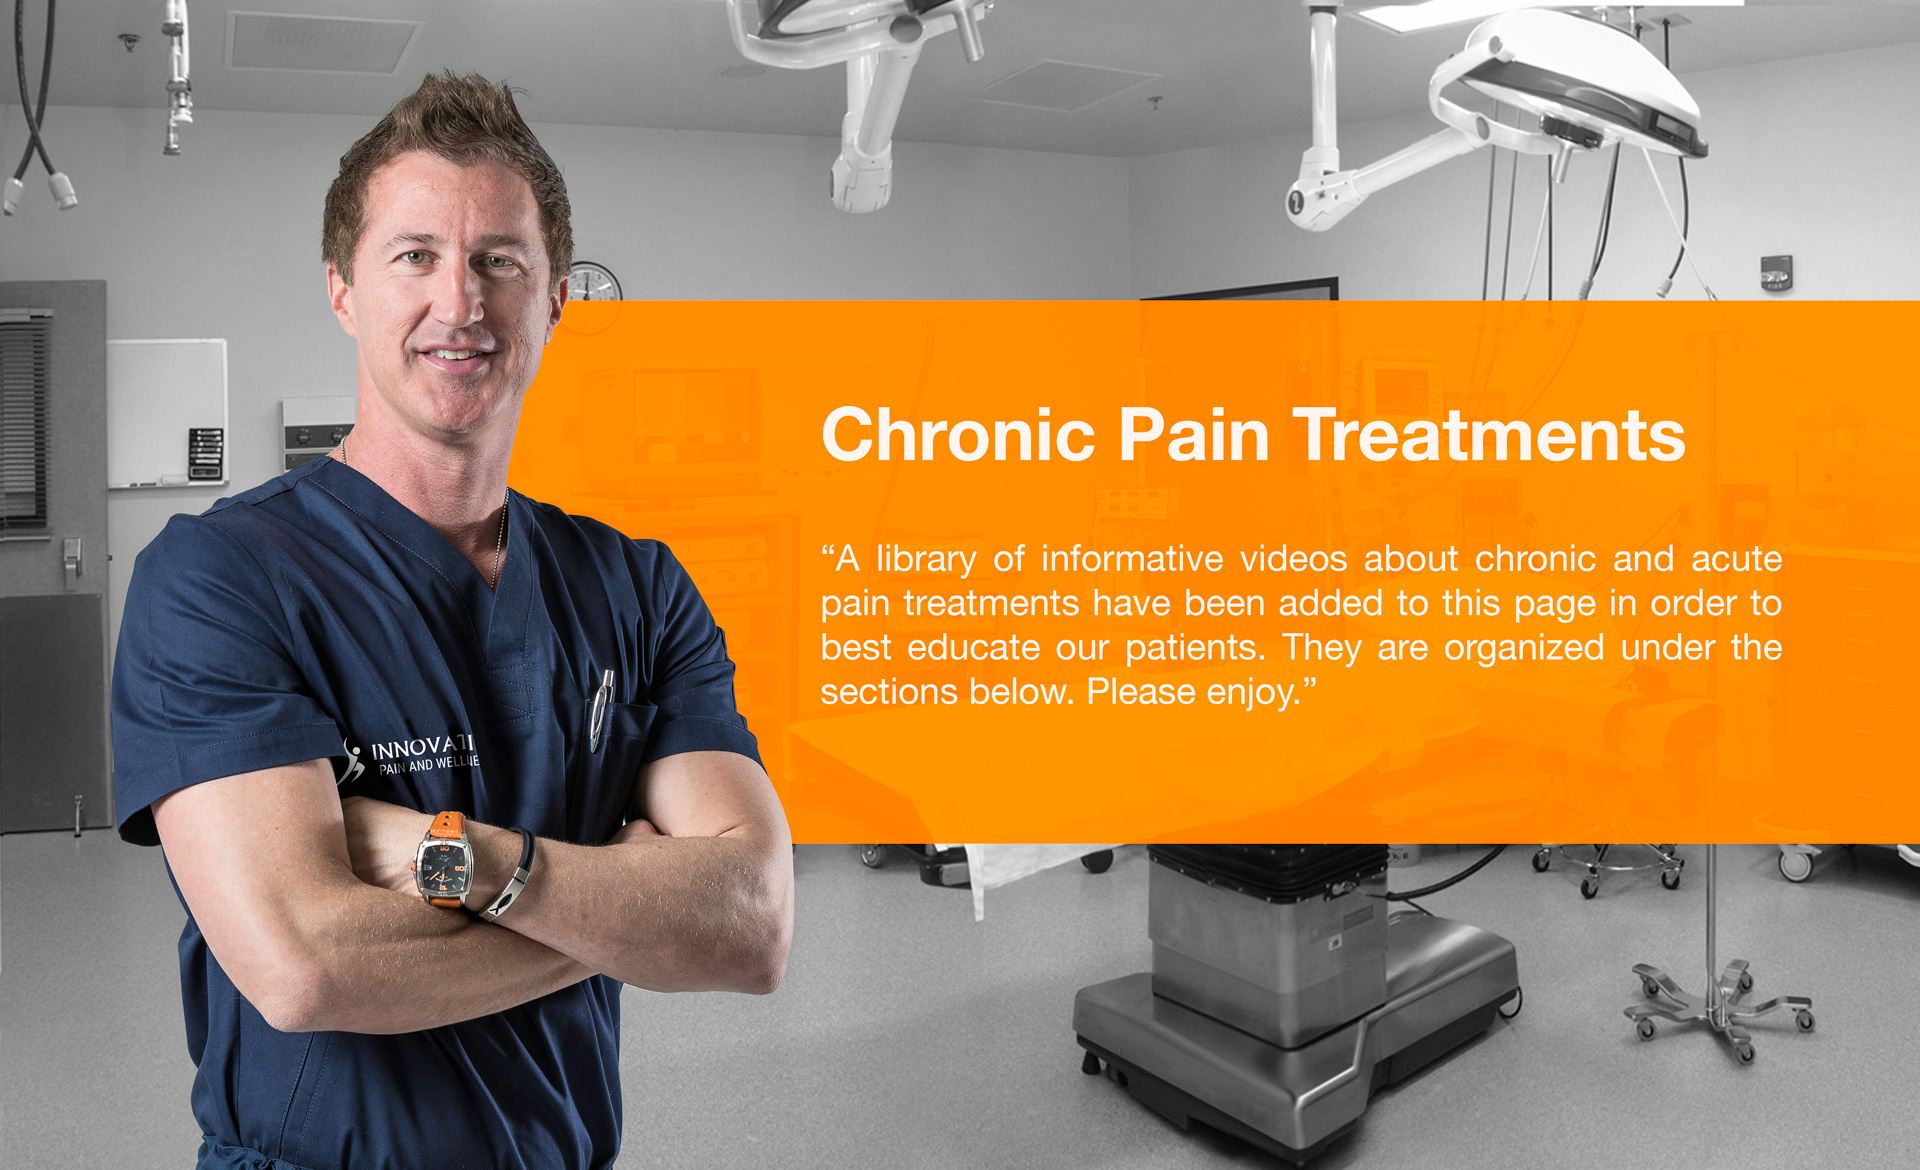 Chronic pain treatments